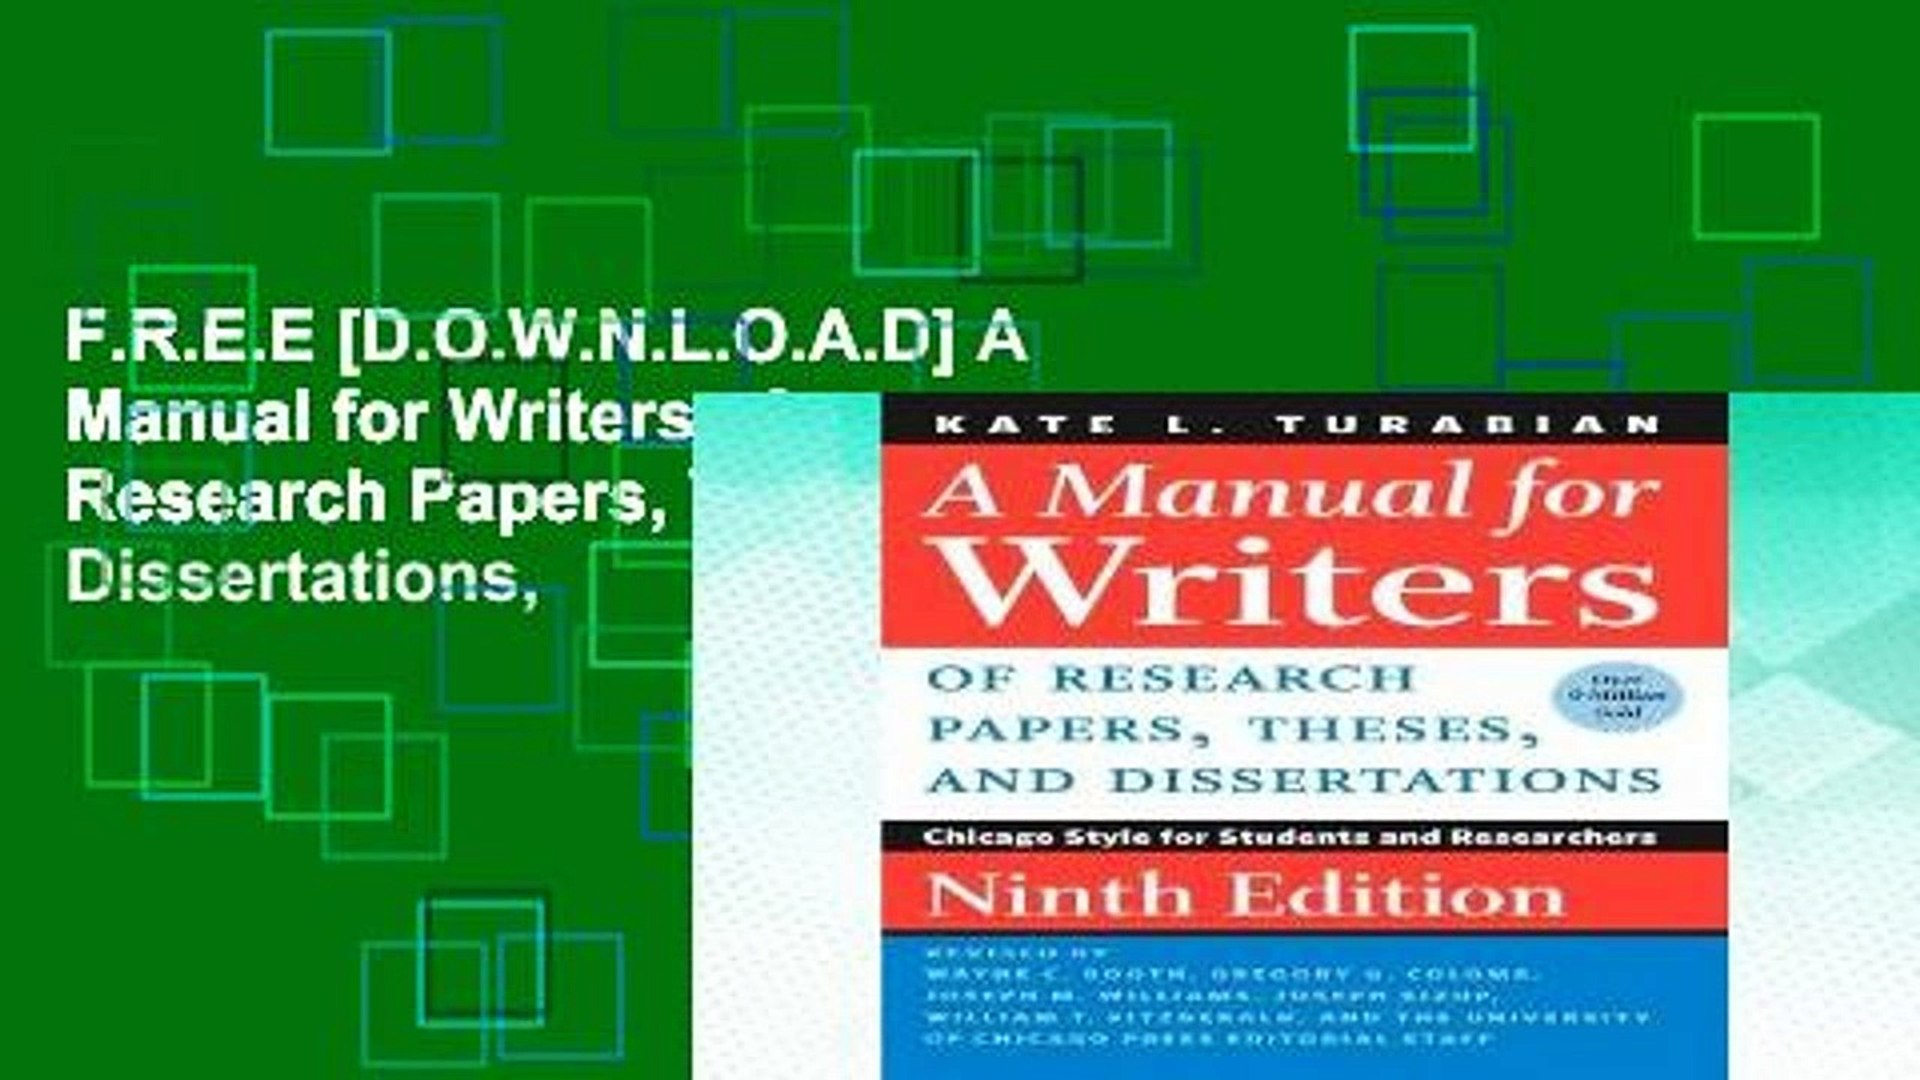 013 X1080 Kcn Research Paper Manual For Writers Of Papers Theses And Magnificent Dissertations A 8th Pdf Amazon Full